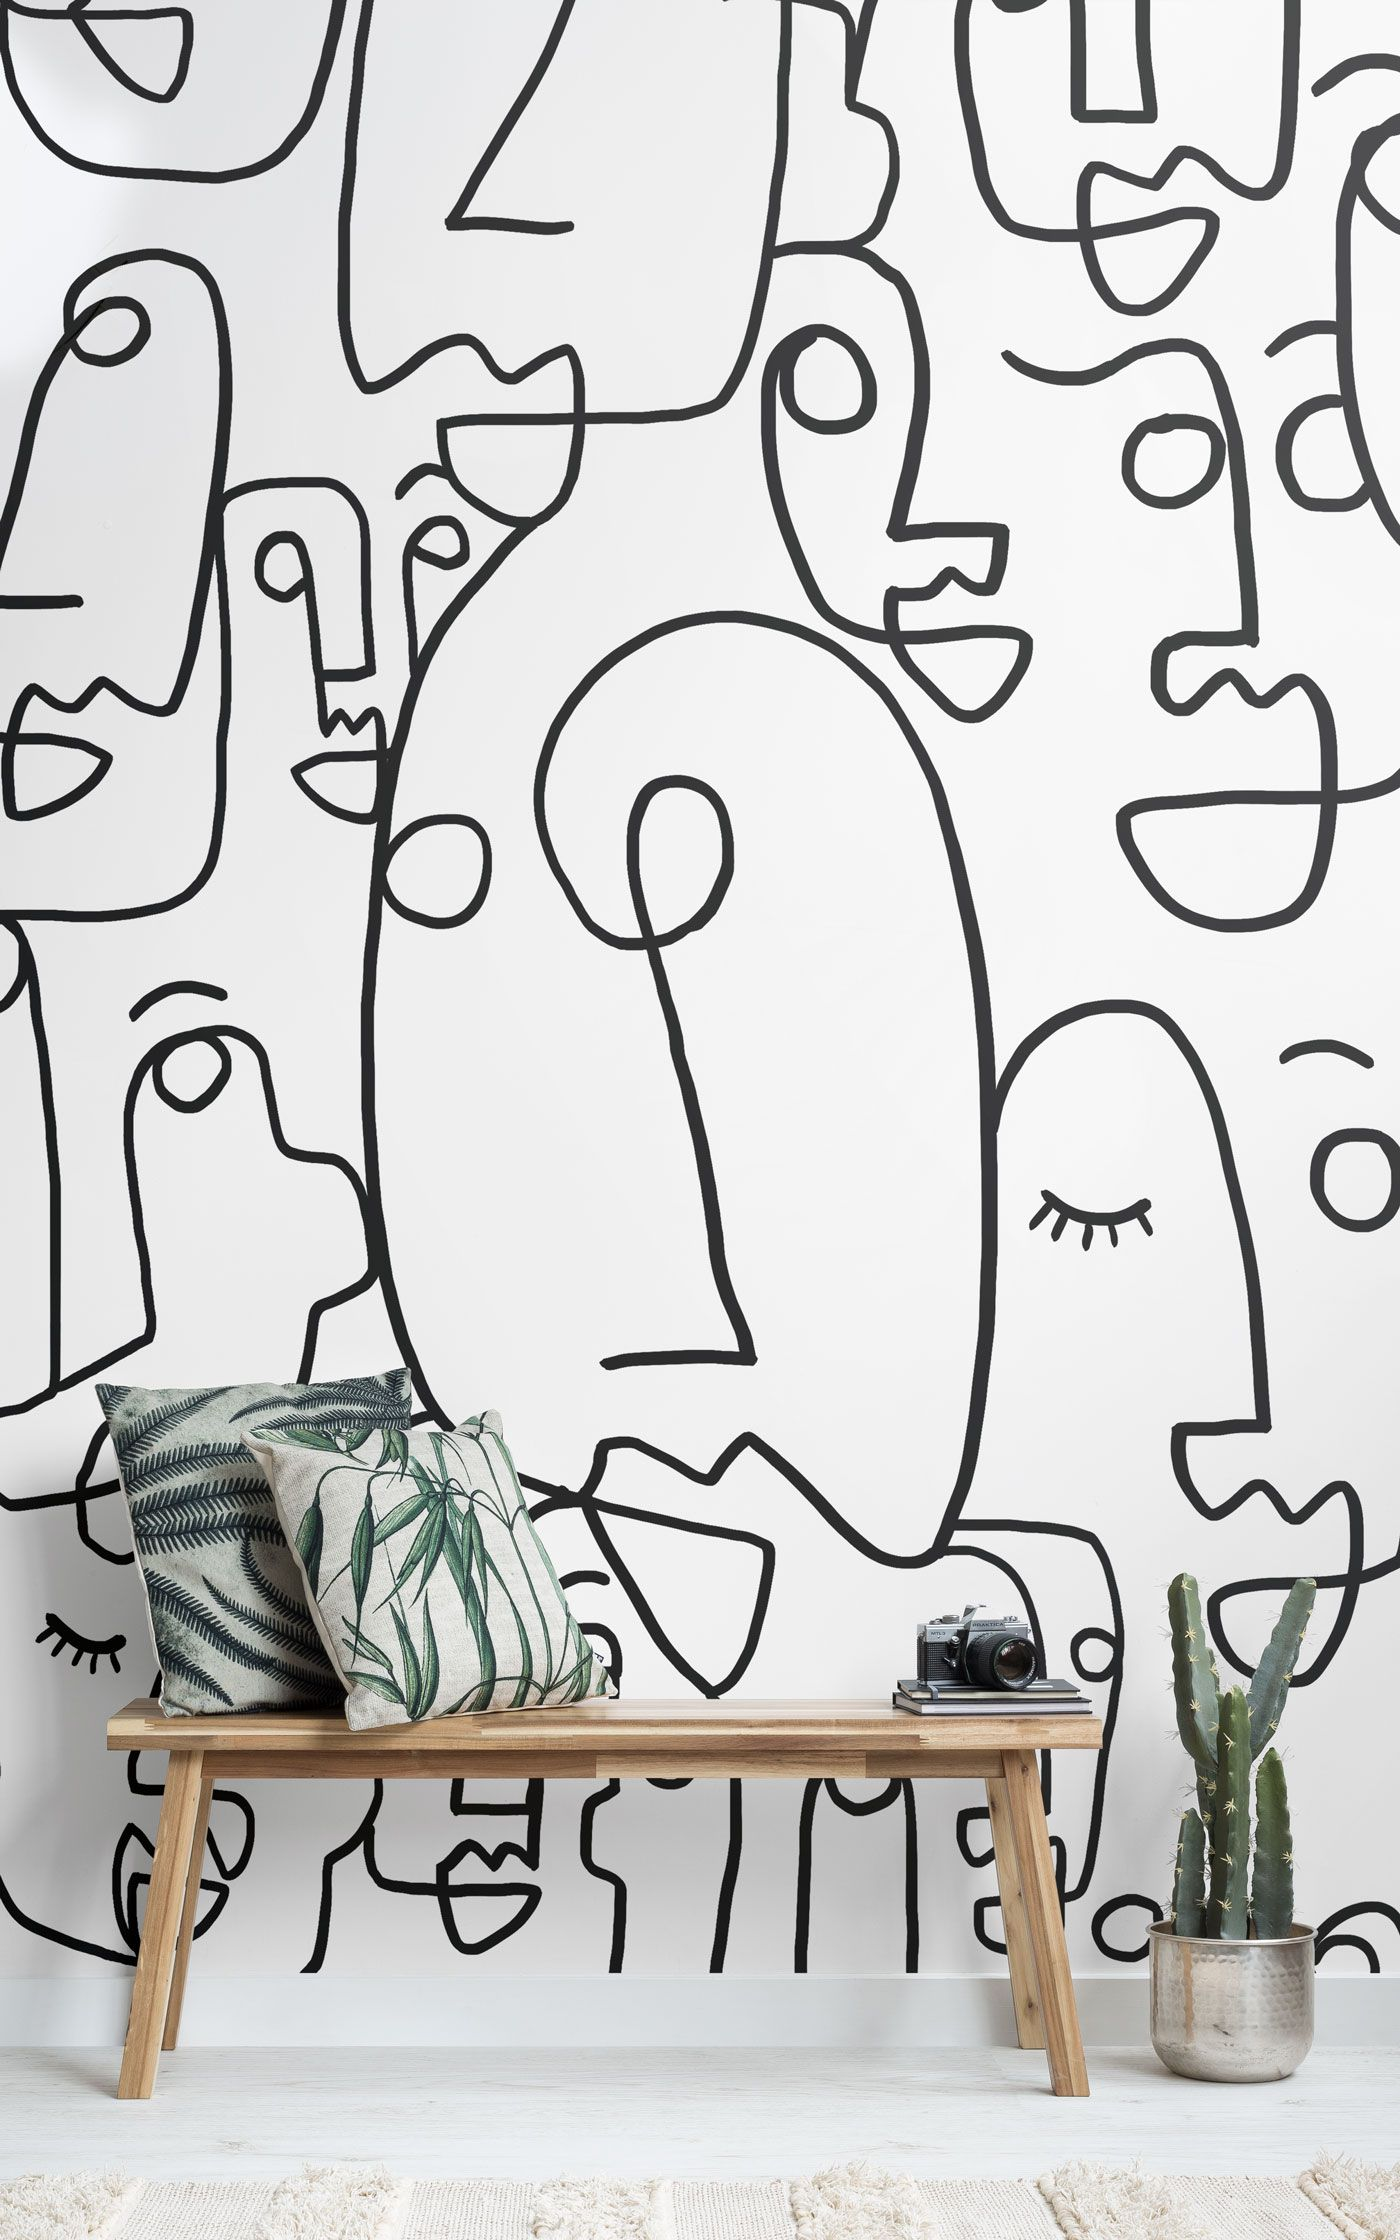 Bring iconic design and a natural creative flair into your home with this collection of continuous face line drawings see more